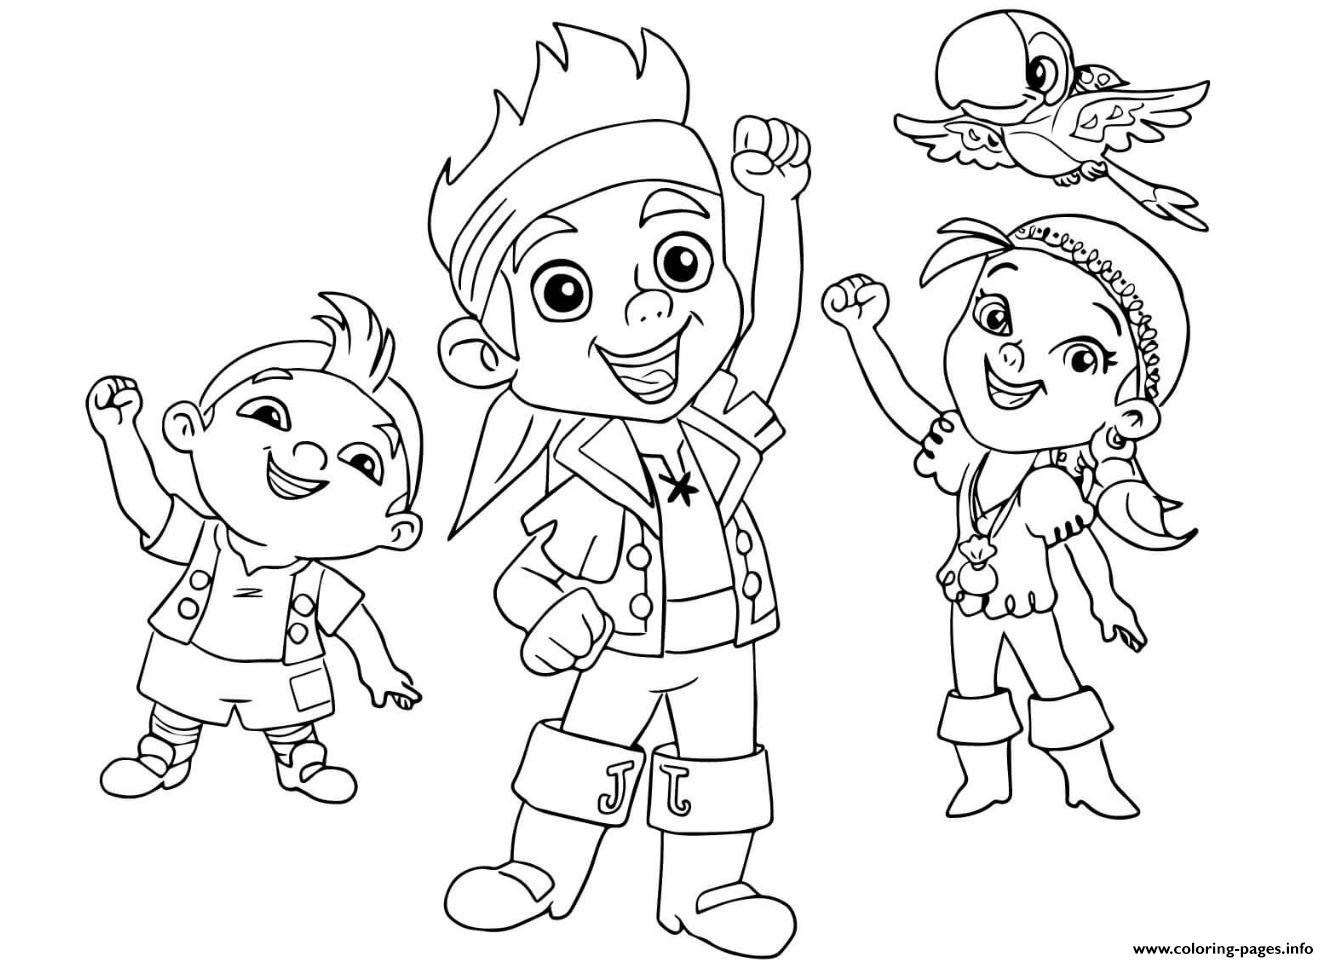 jake and the neverland pirates team halloween coloring pages printable